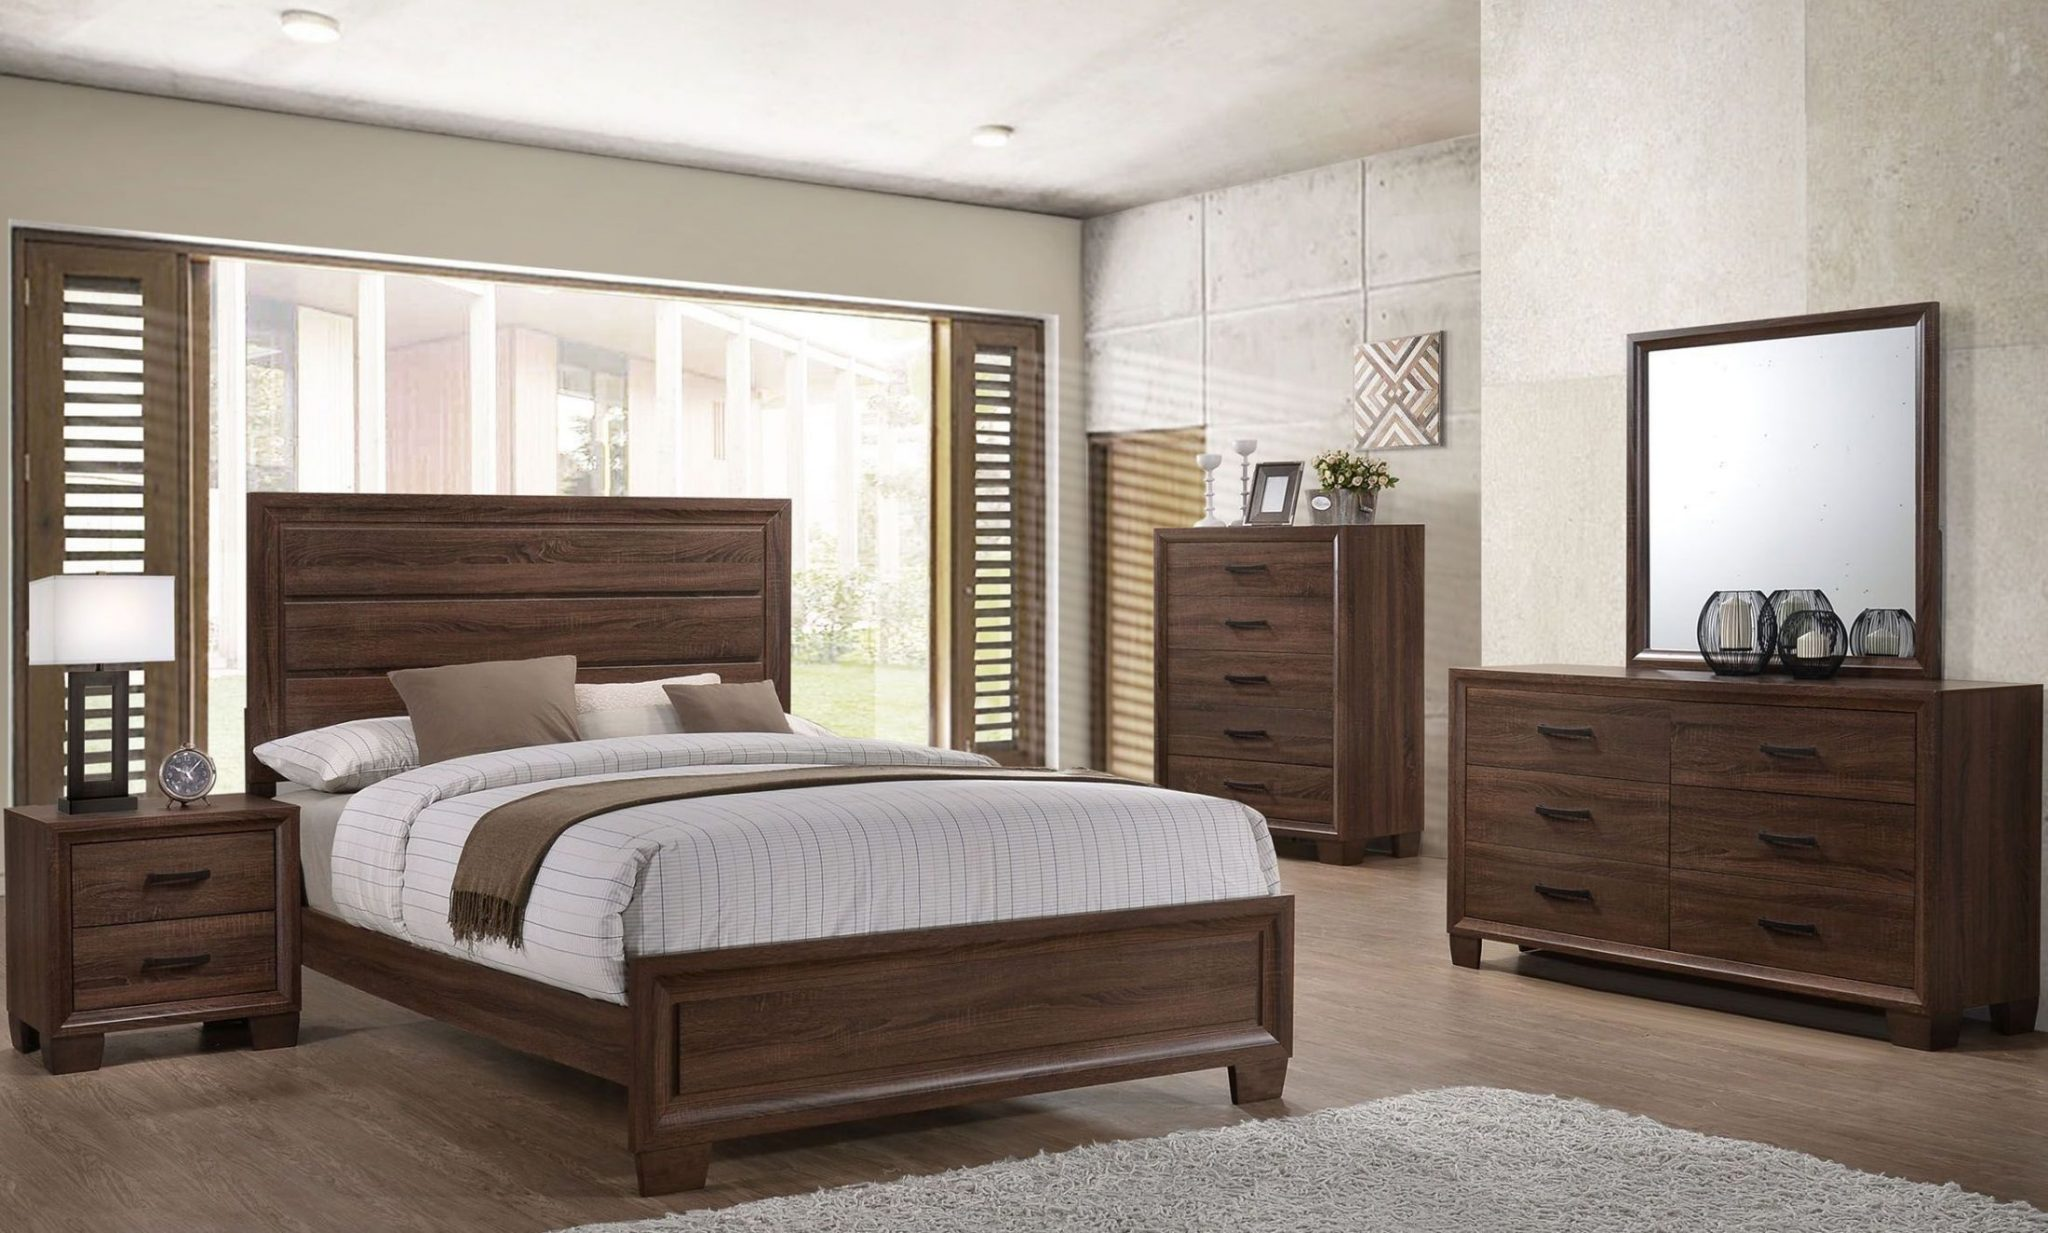 Tips on Buying Good Bedroom Furniture